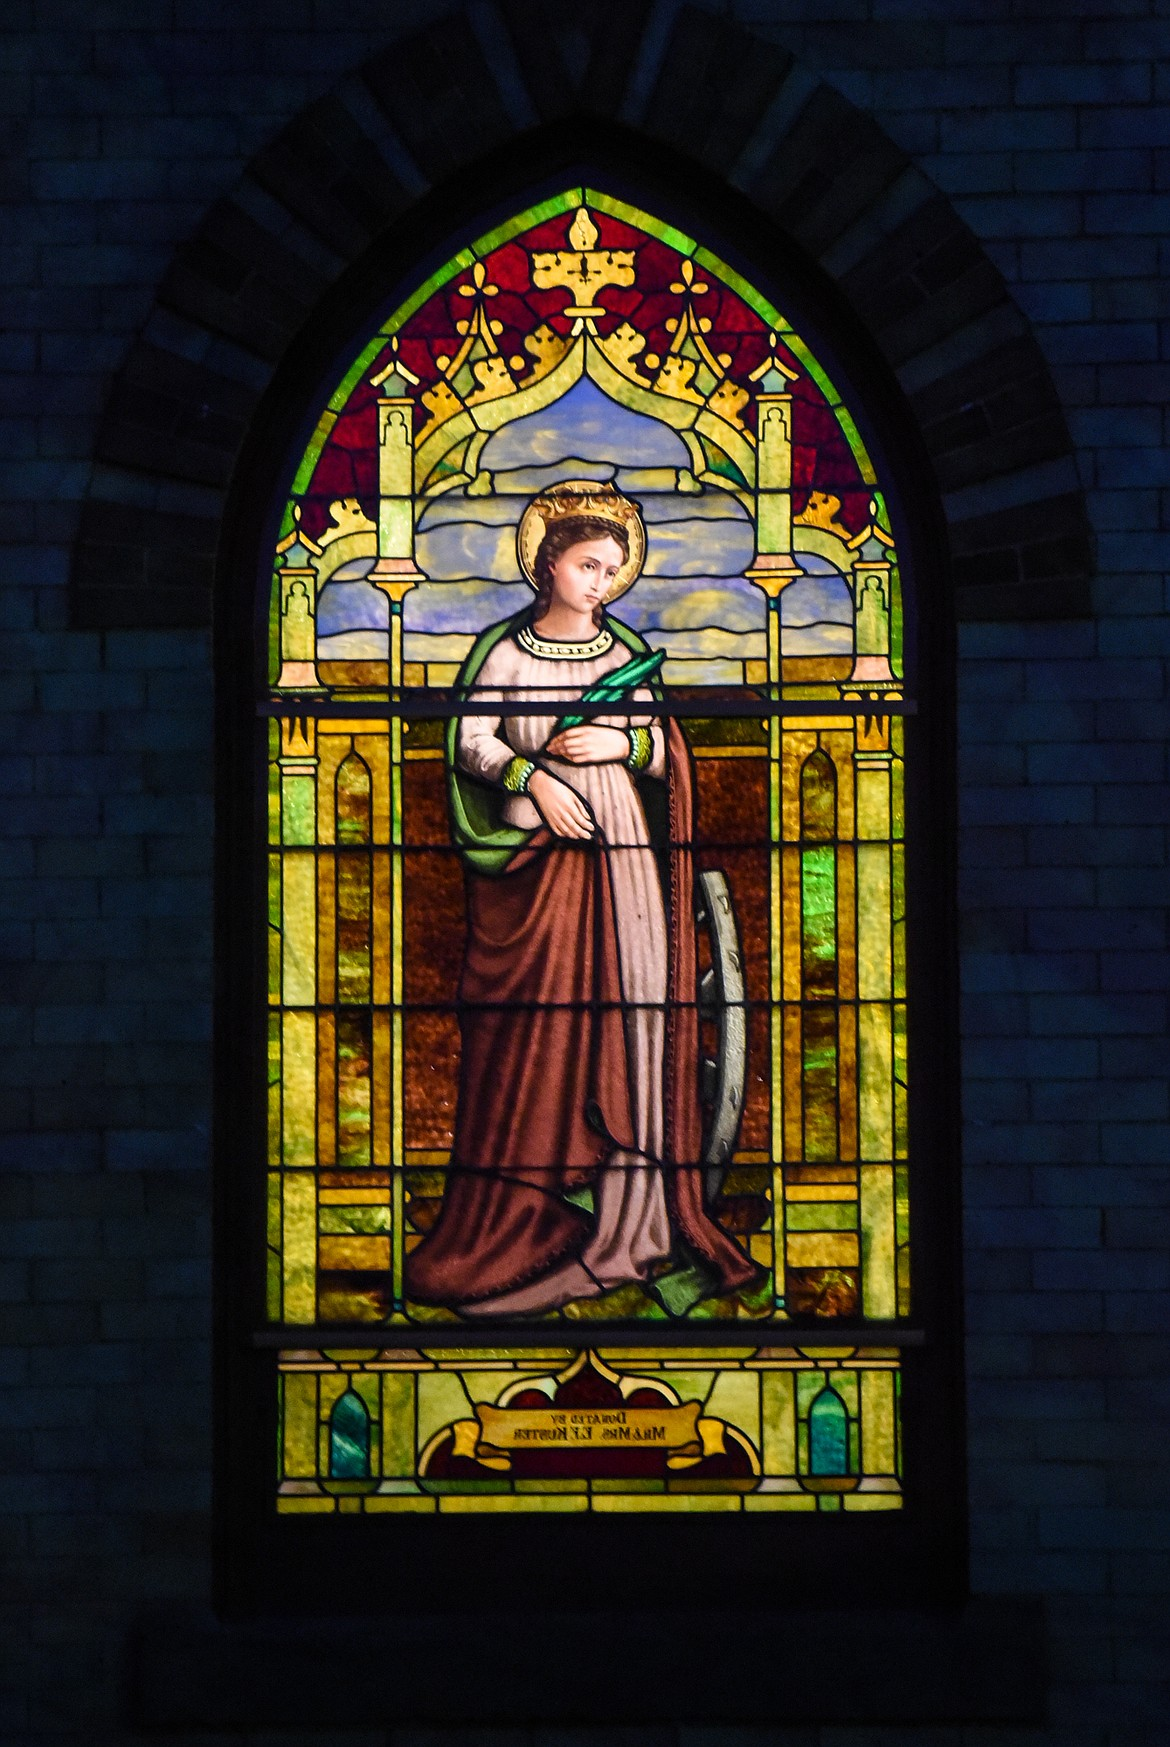 Detail of a stained glass window at St. Matthew's Catholic Church in Kalispell on Saturday, Nov. 21. (Casey Kreider/Daily Inter Lake)